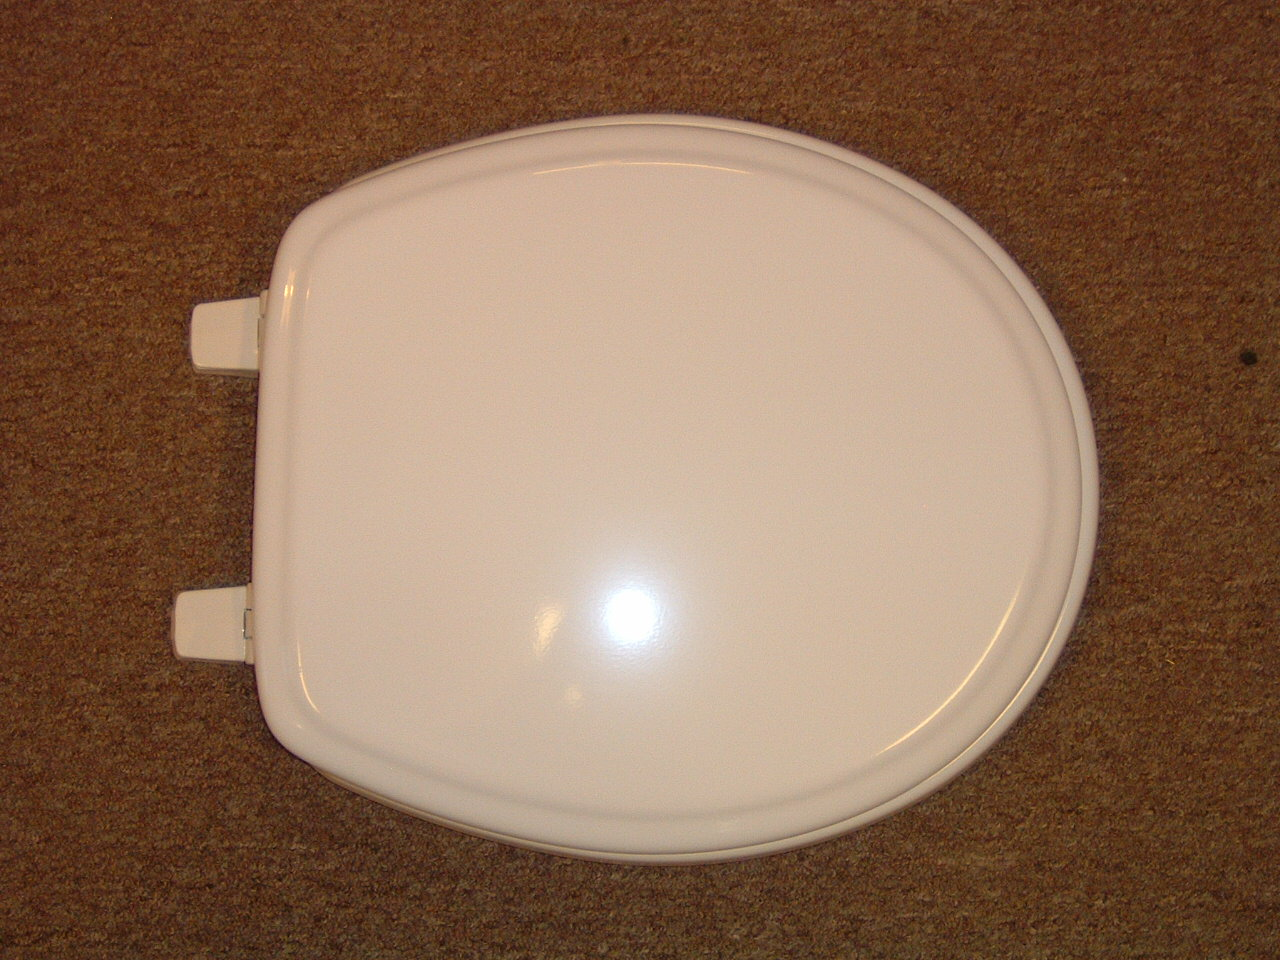 American Standard Round Bowl Town Square Toilet Seat